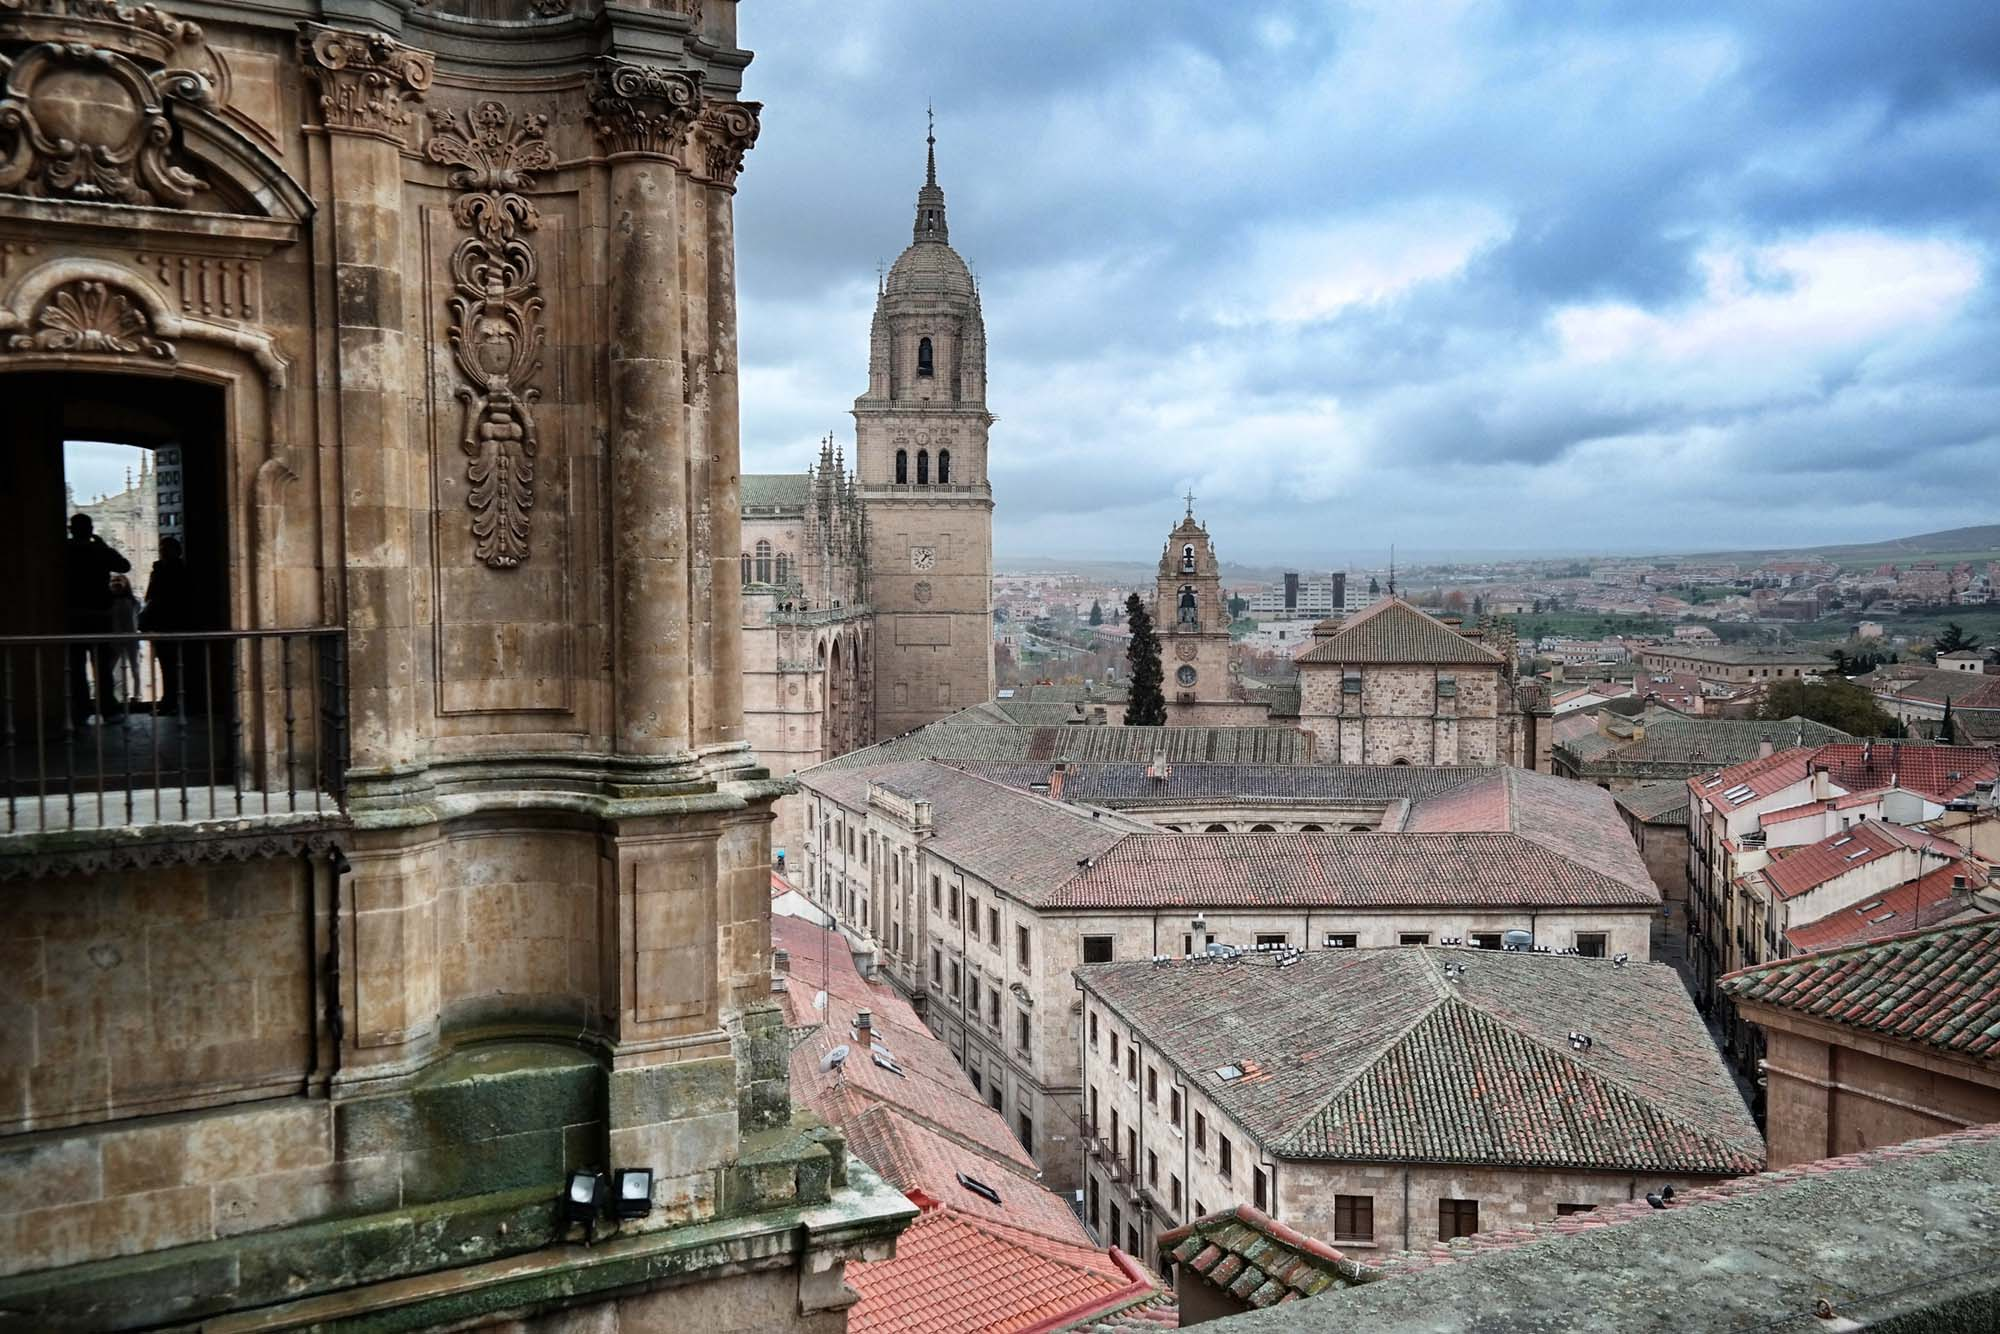 Salamanca, view from clocktower